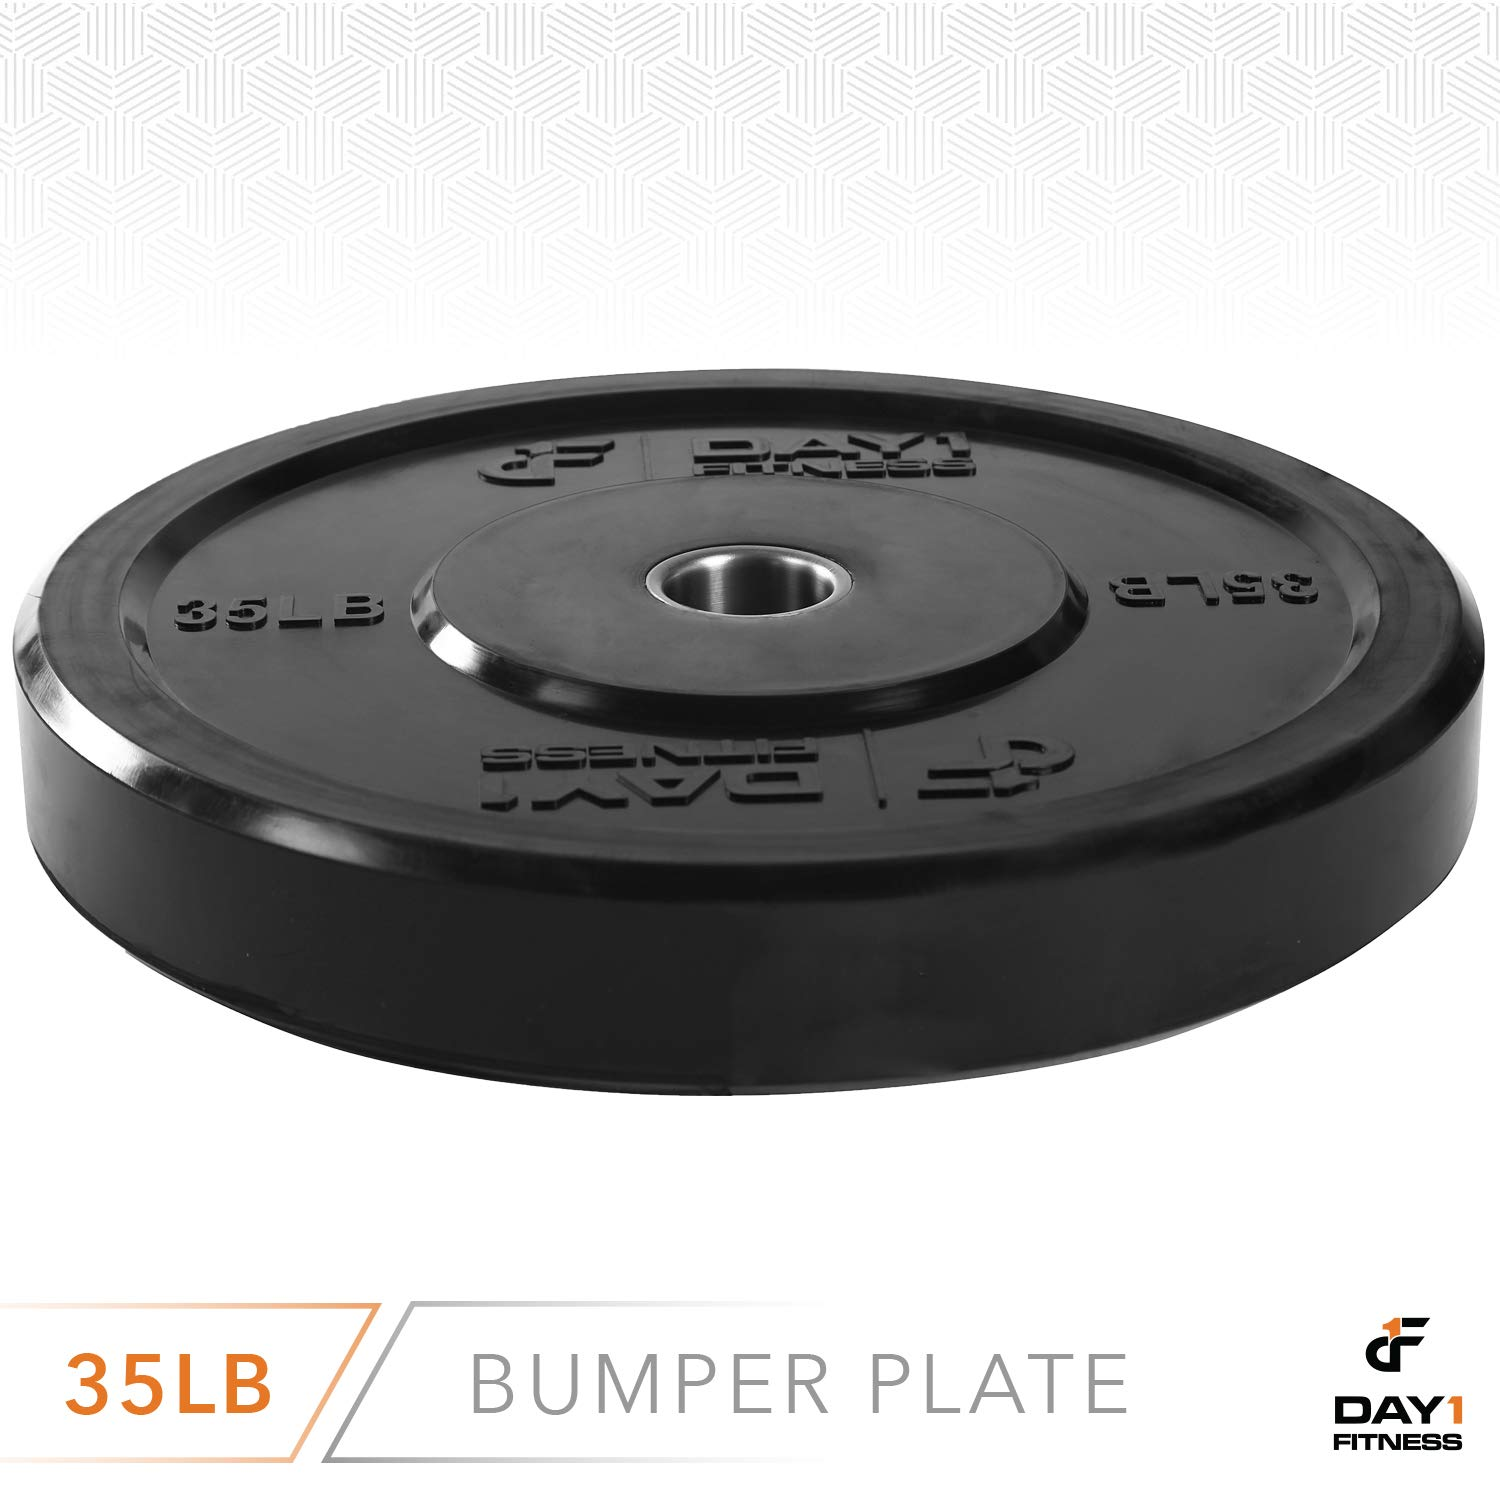 """Day 1 Fitness Olympic Bumper Weighted Plate 2"""" for Barbells, Bars – 35 lb Single Plate - Shock-Absorbing, Minimal Bounce Steel Weights with Bumpers for Lifting, Strength Training, and Working Out by Day 1 Fitness (Image #3)"""